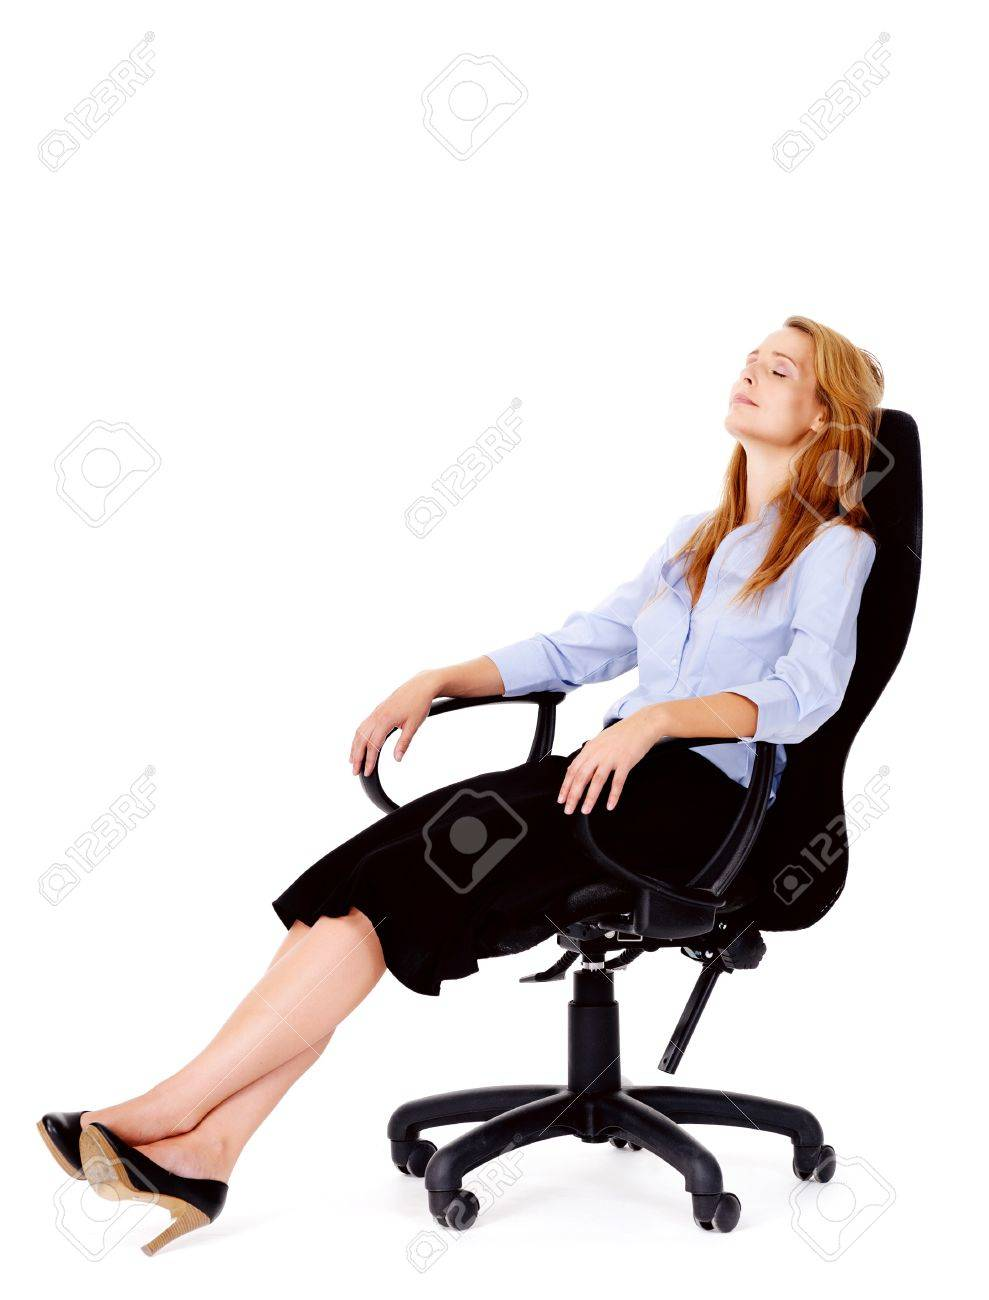 Business Woman Sitting In Office Chair Relaxing Isolated On White Stock Photo Picture And Royalty Free Image Image 13025472